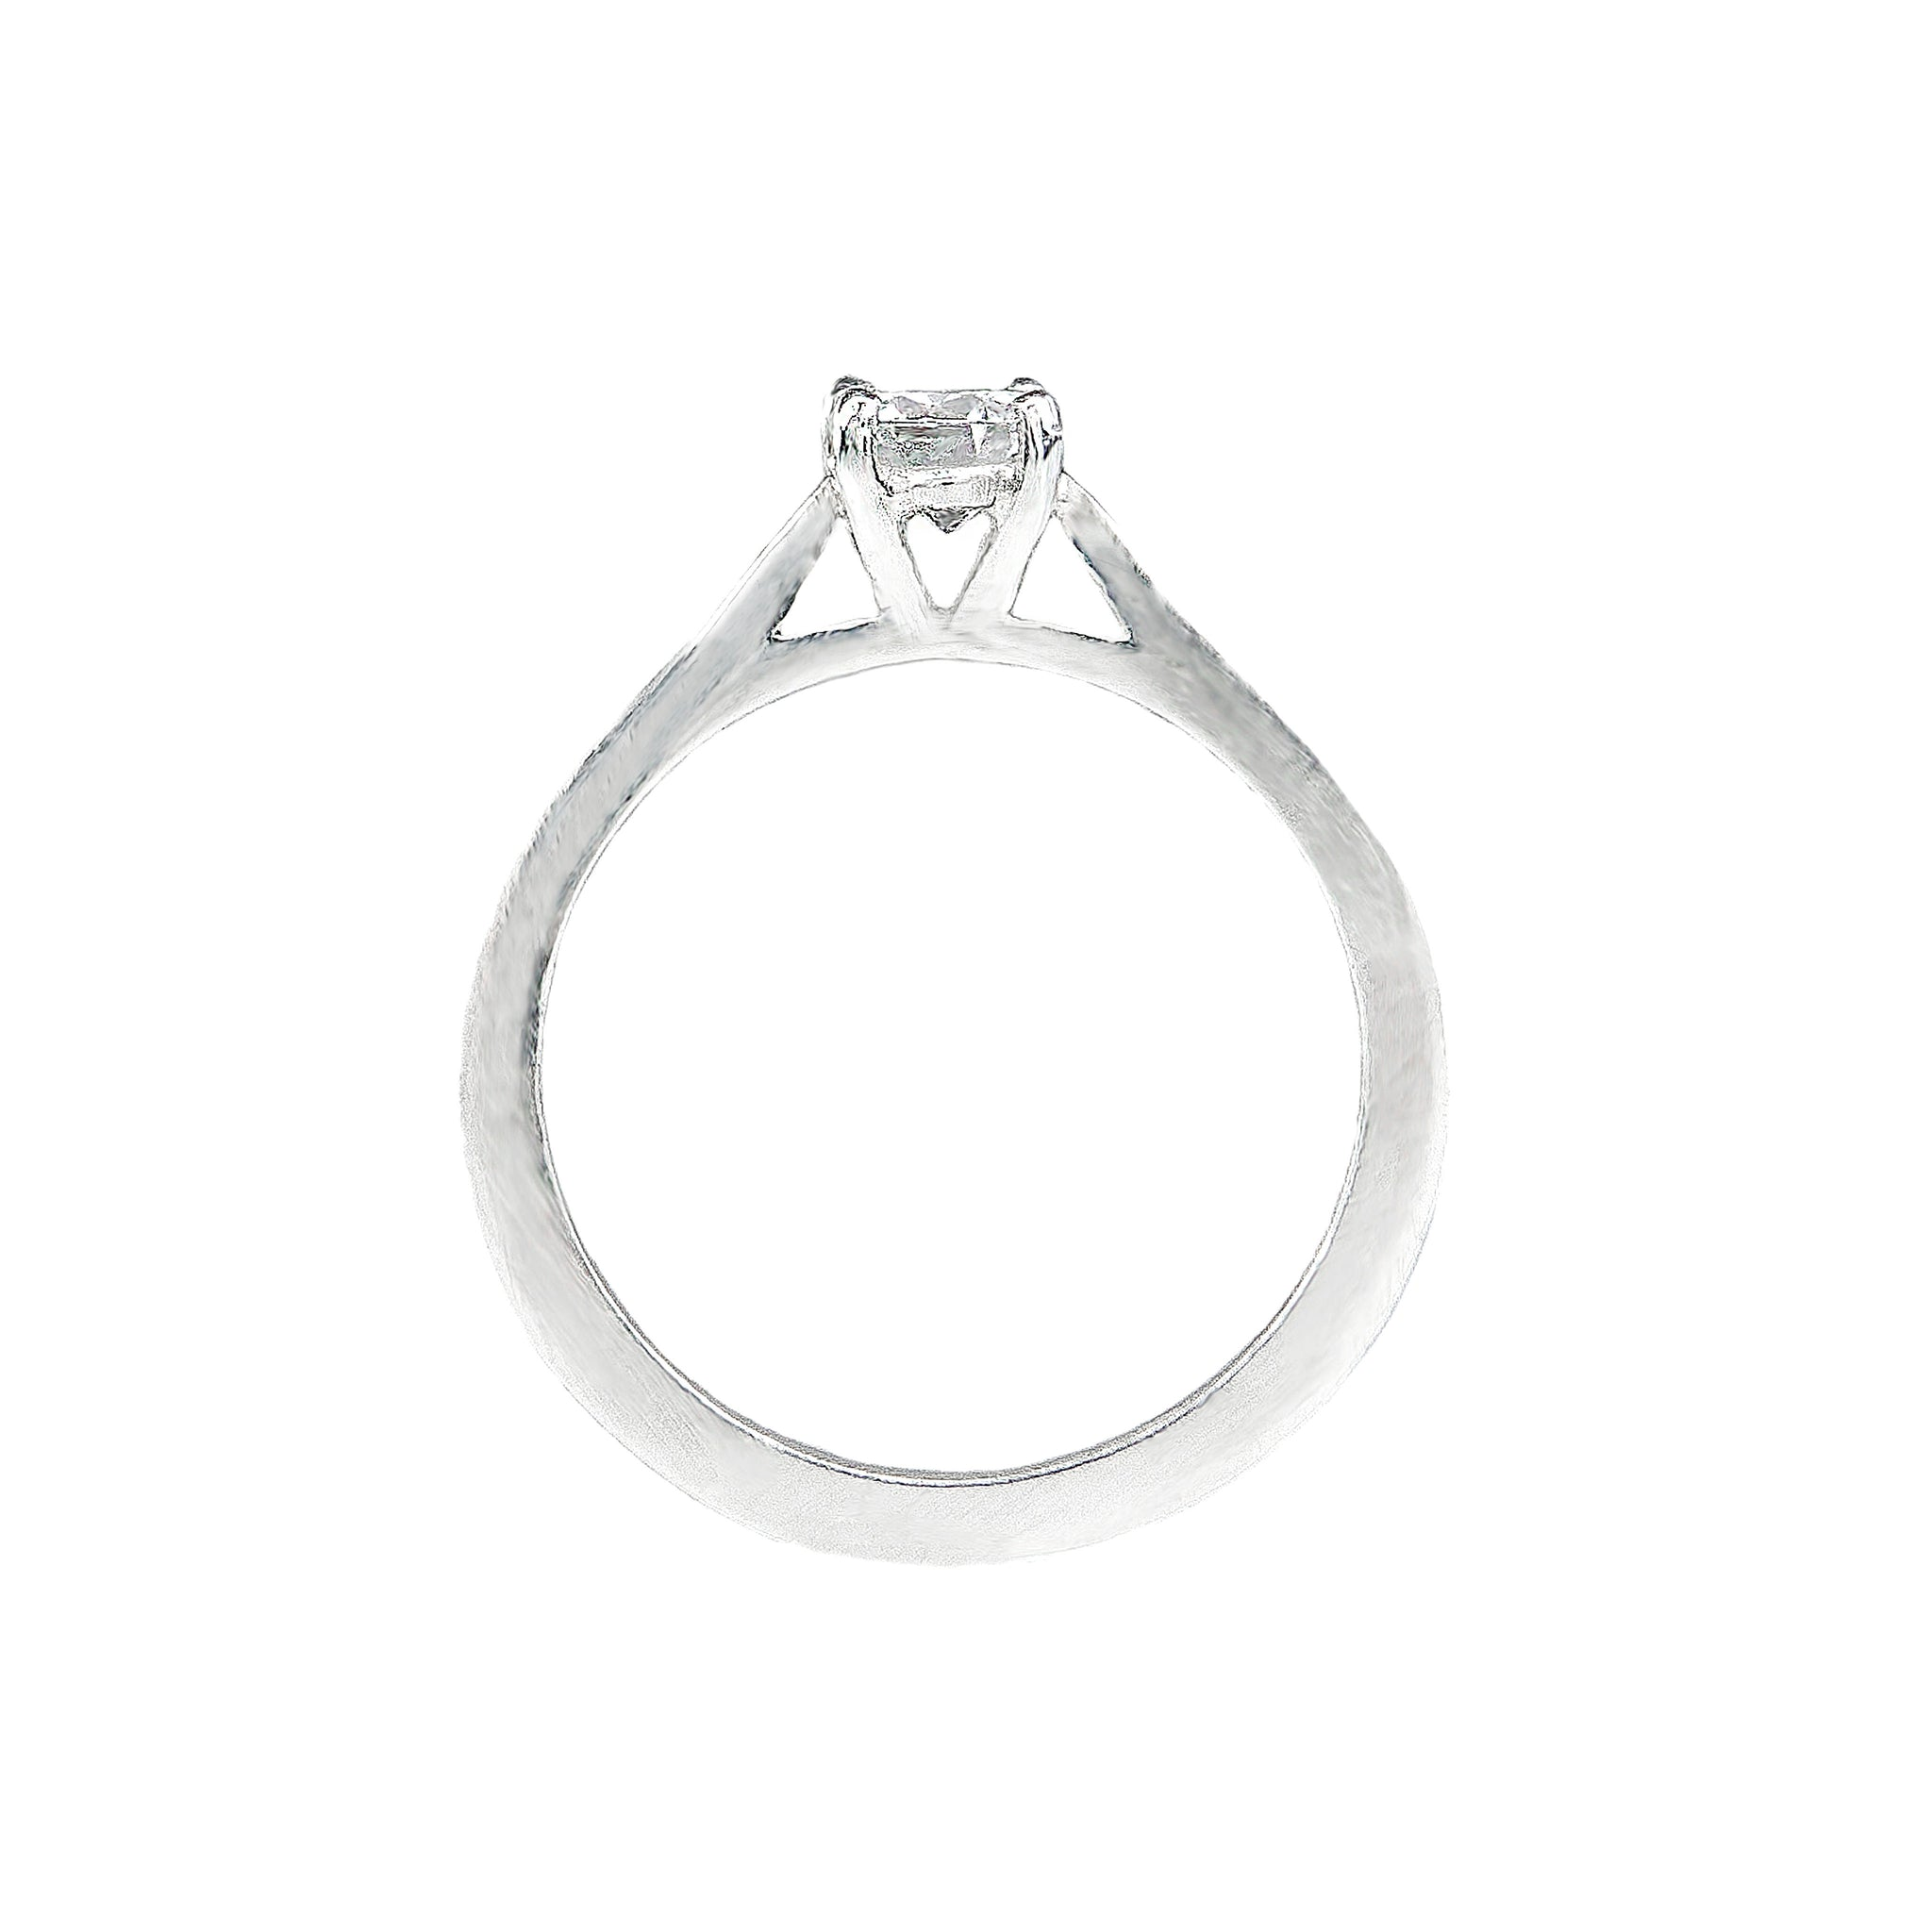 Rose Solitaire Ethical Engagement Ring